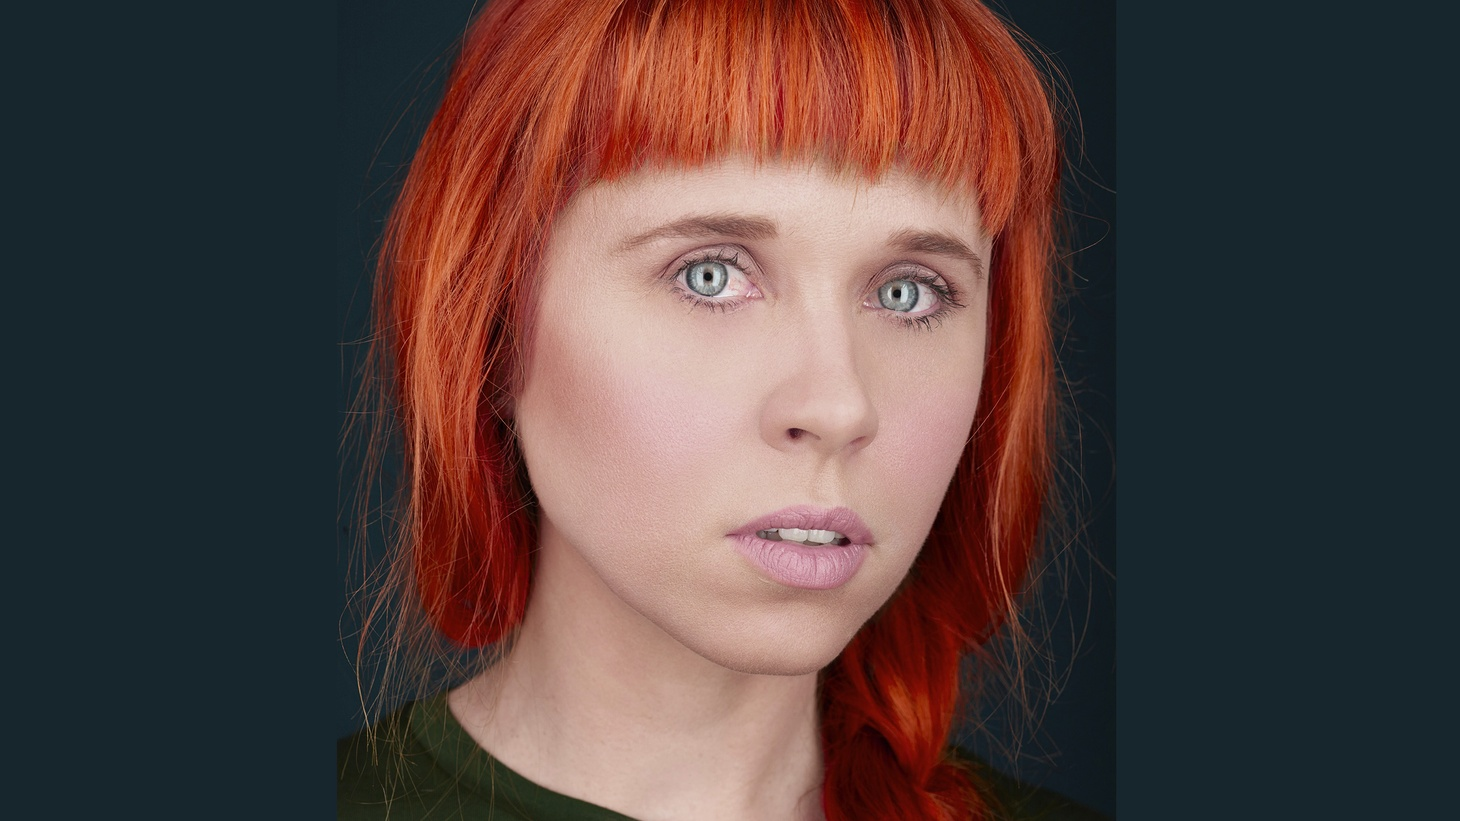 Experimental electronic music composer makes her 4AD debut with a challenging, but rewarding collection of post-techno songs to tweak the mind and body both.